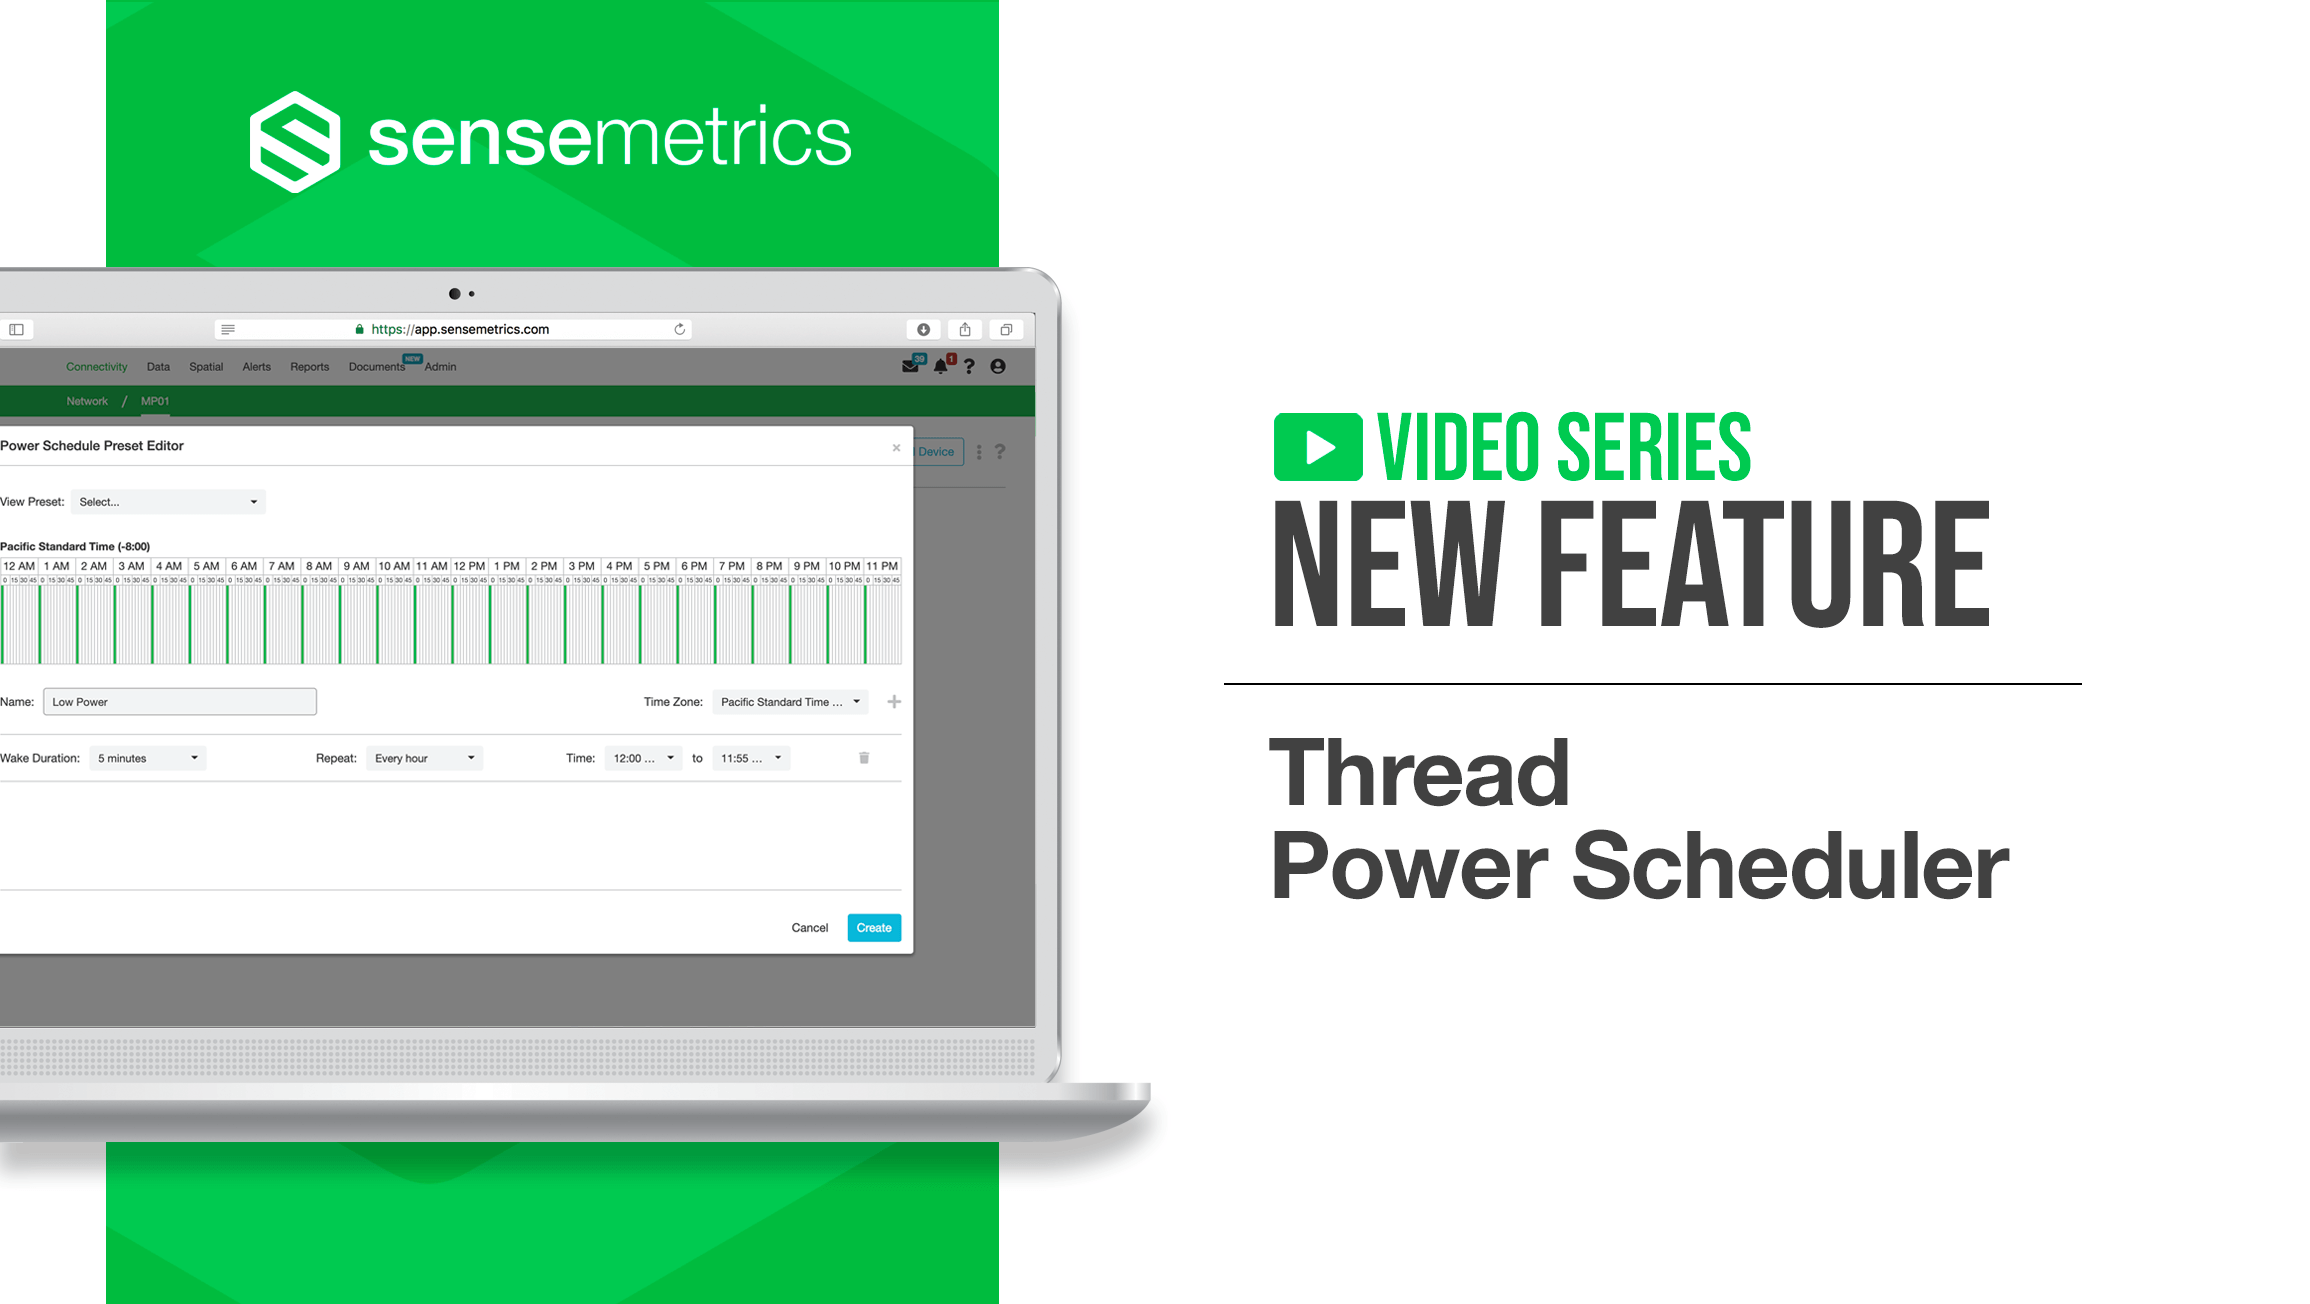 New Feature: Thread Power Scheduler